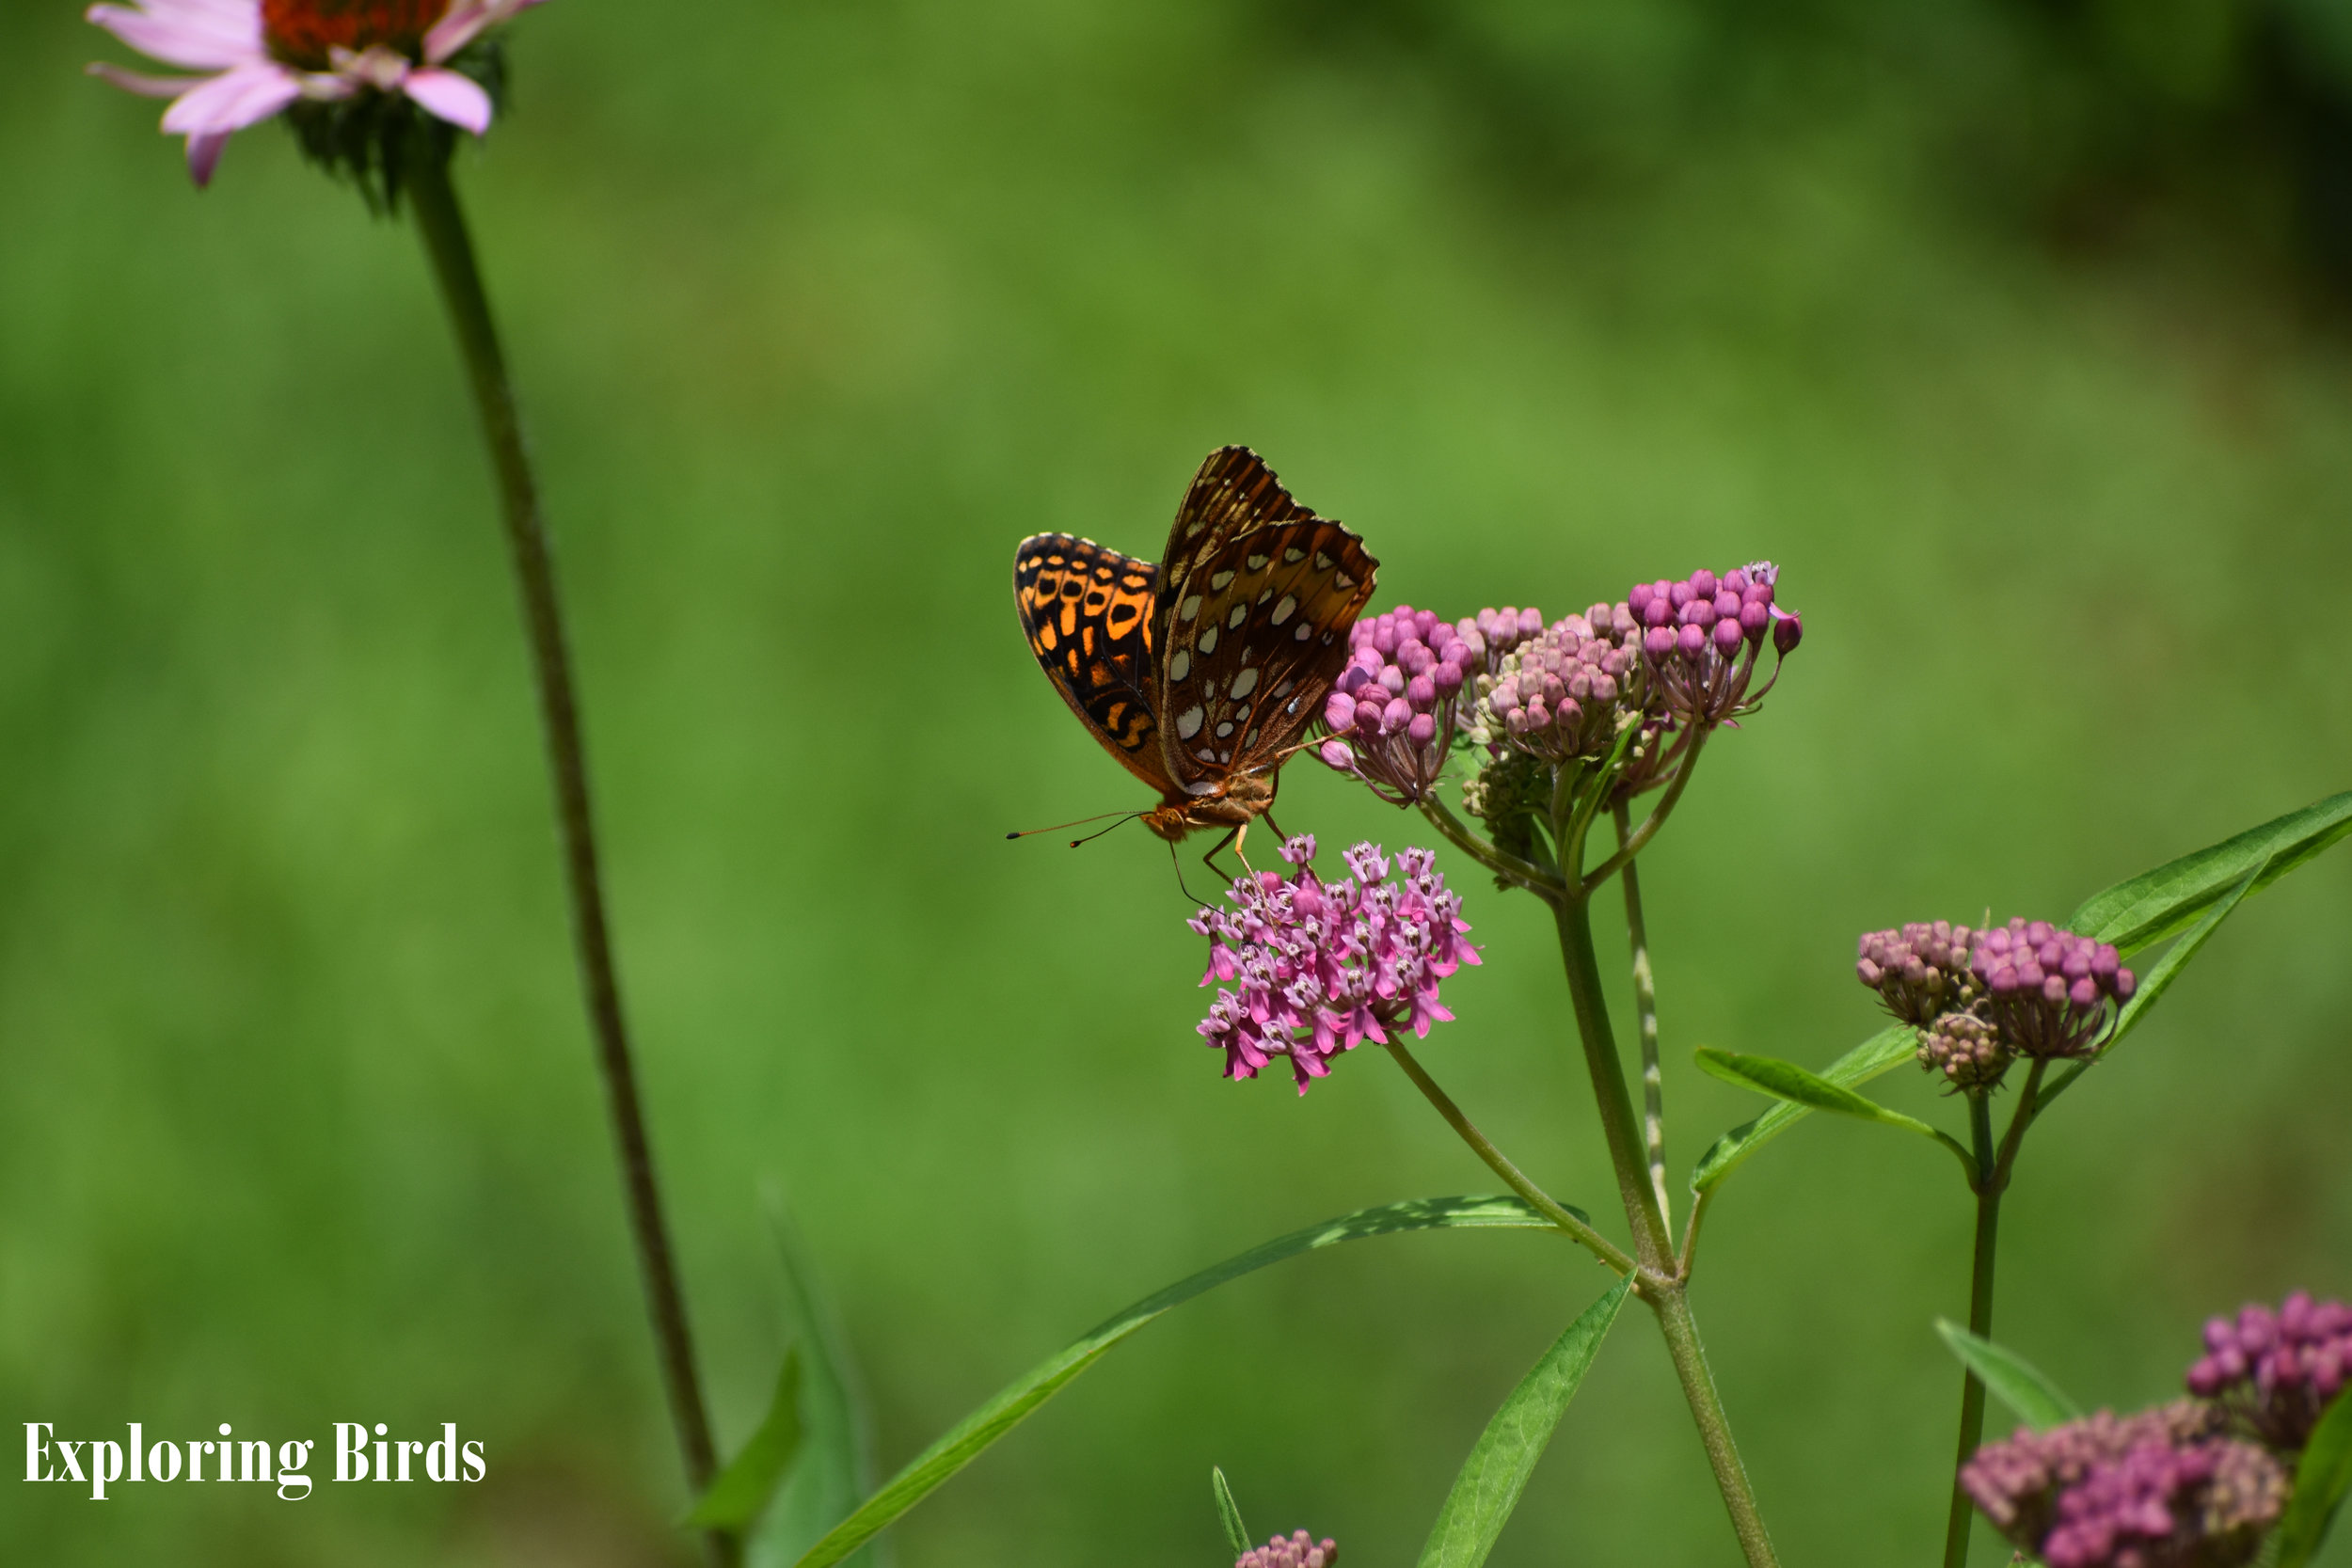 Swamp Milkweed is a flower that attracts insects